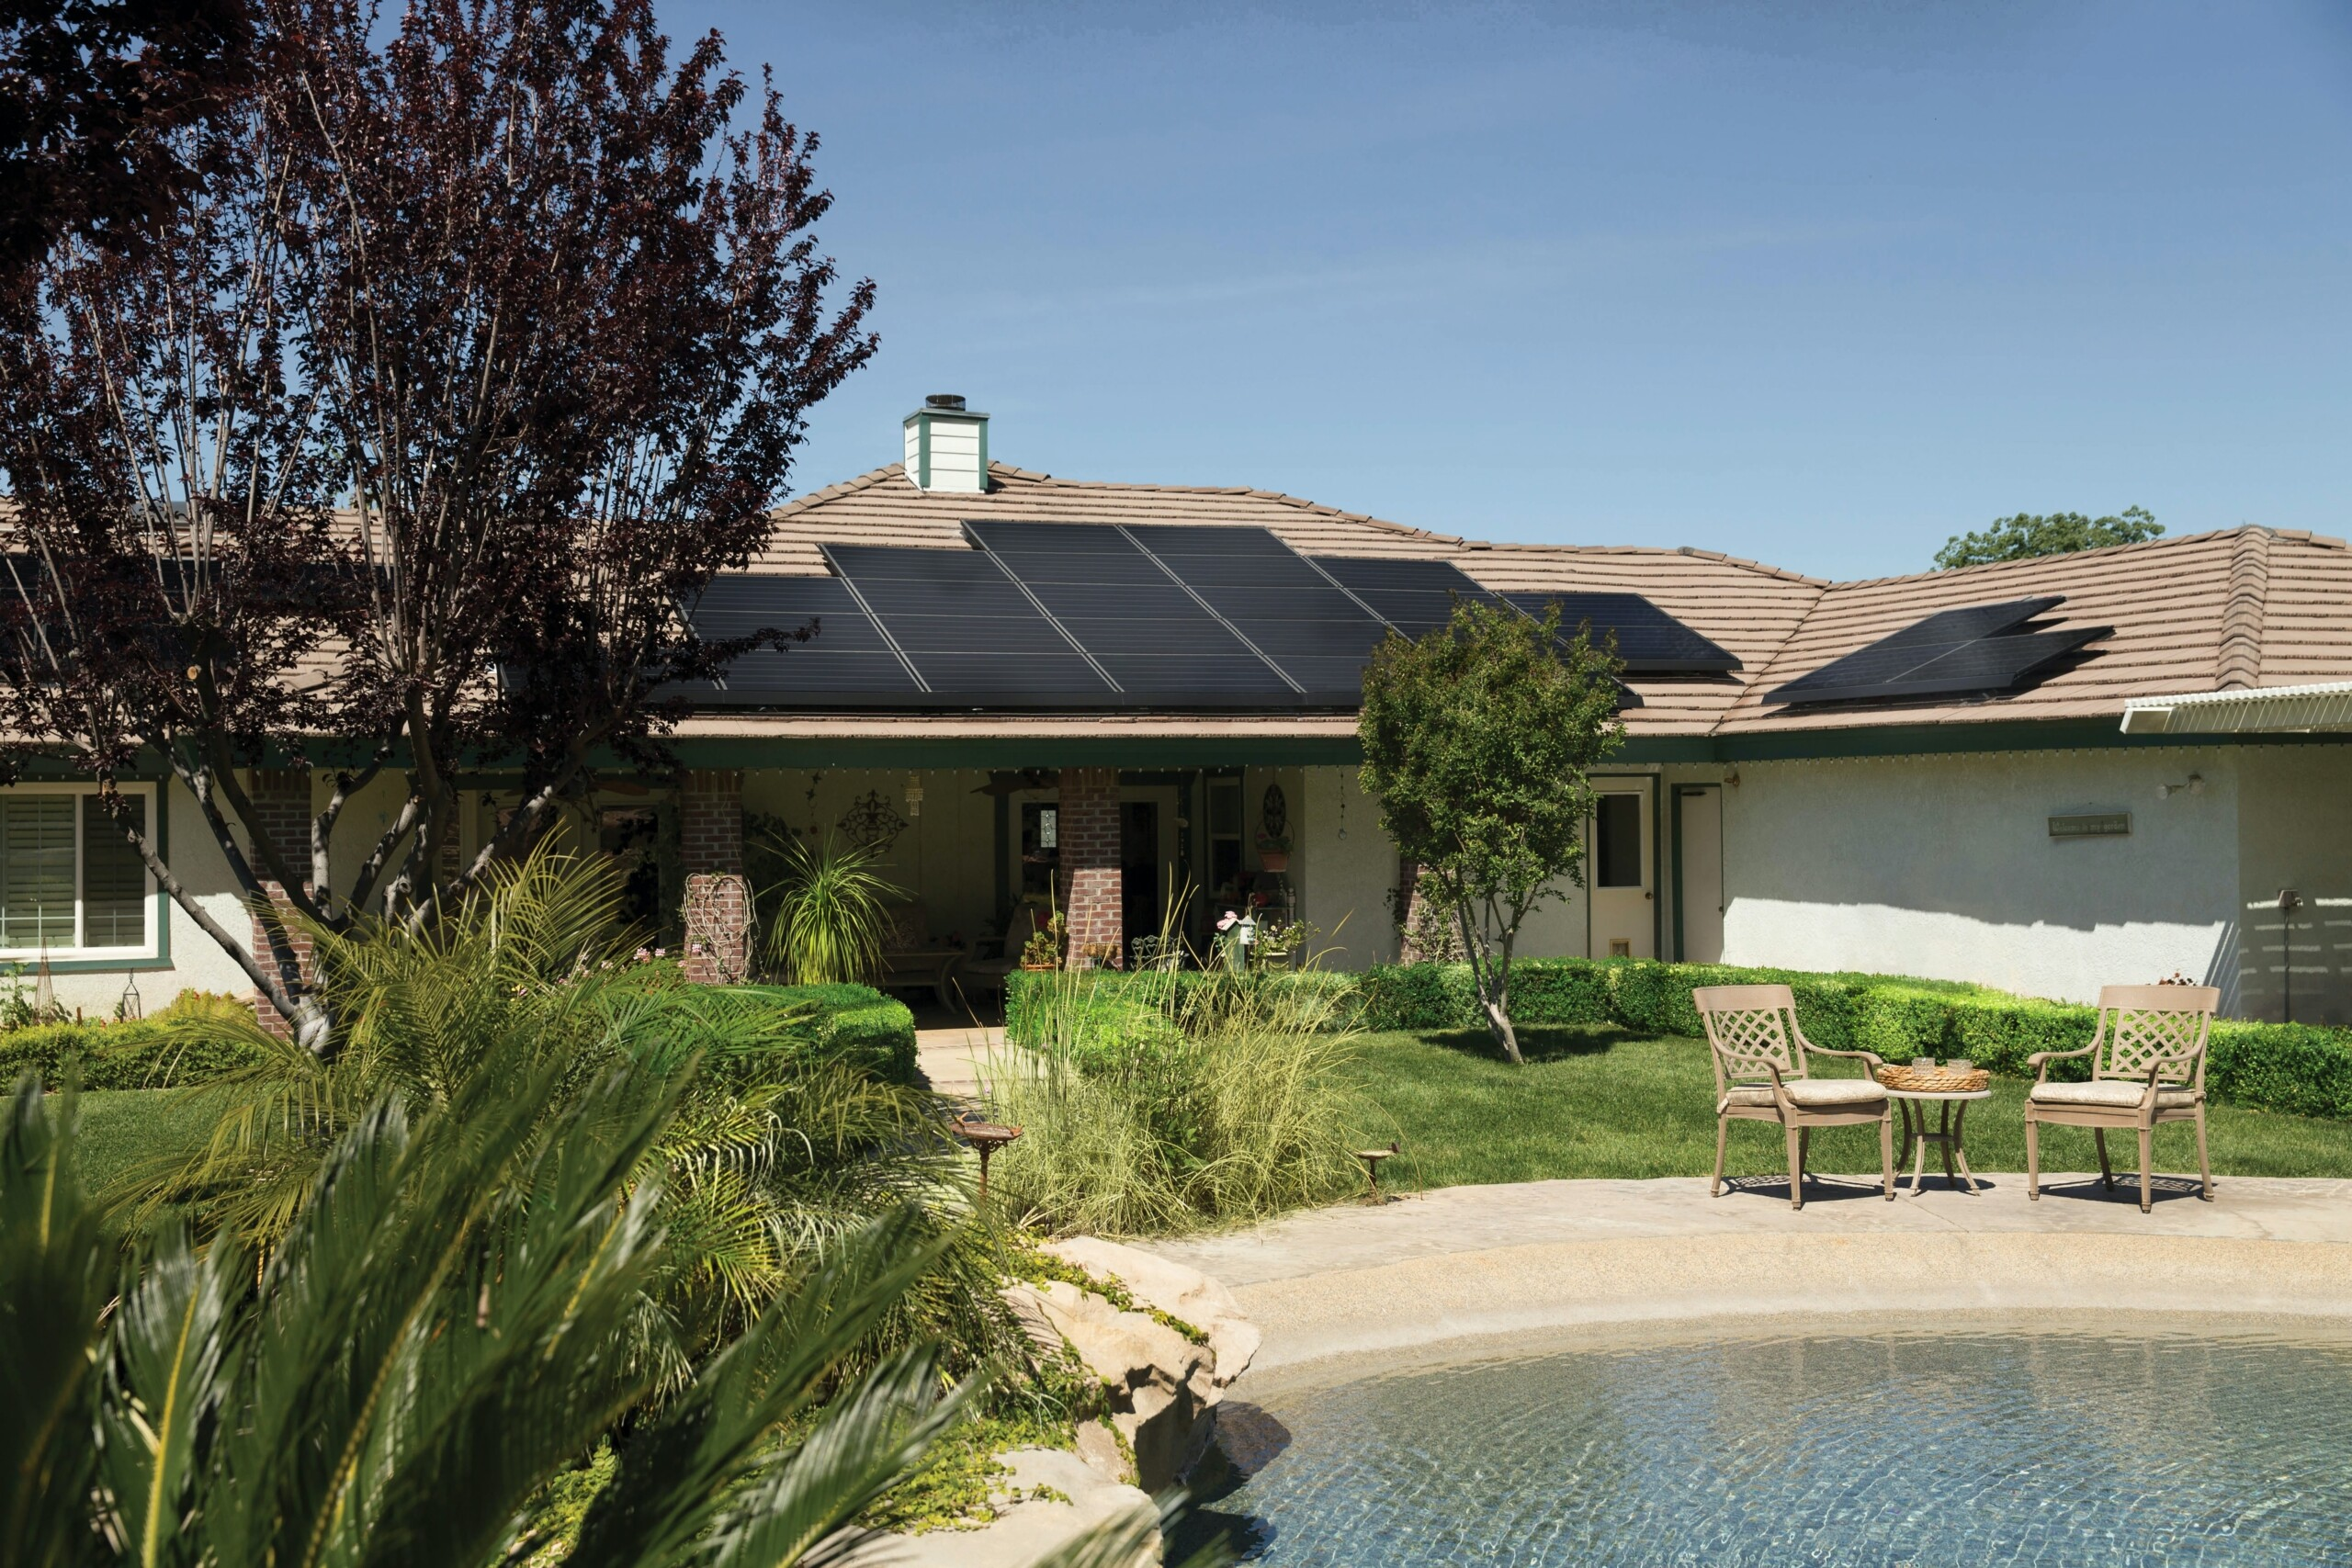 Solar Panels on Your Home: Pros & Cons